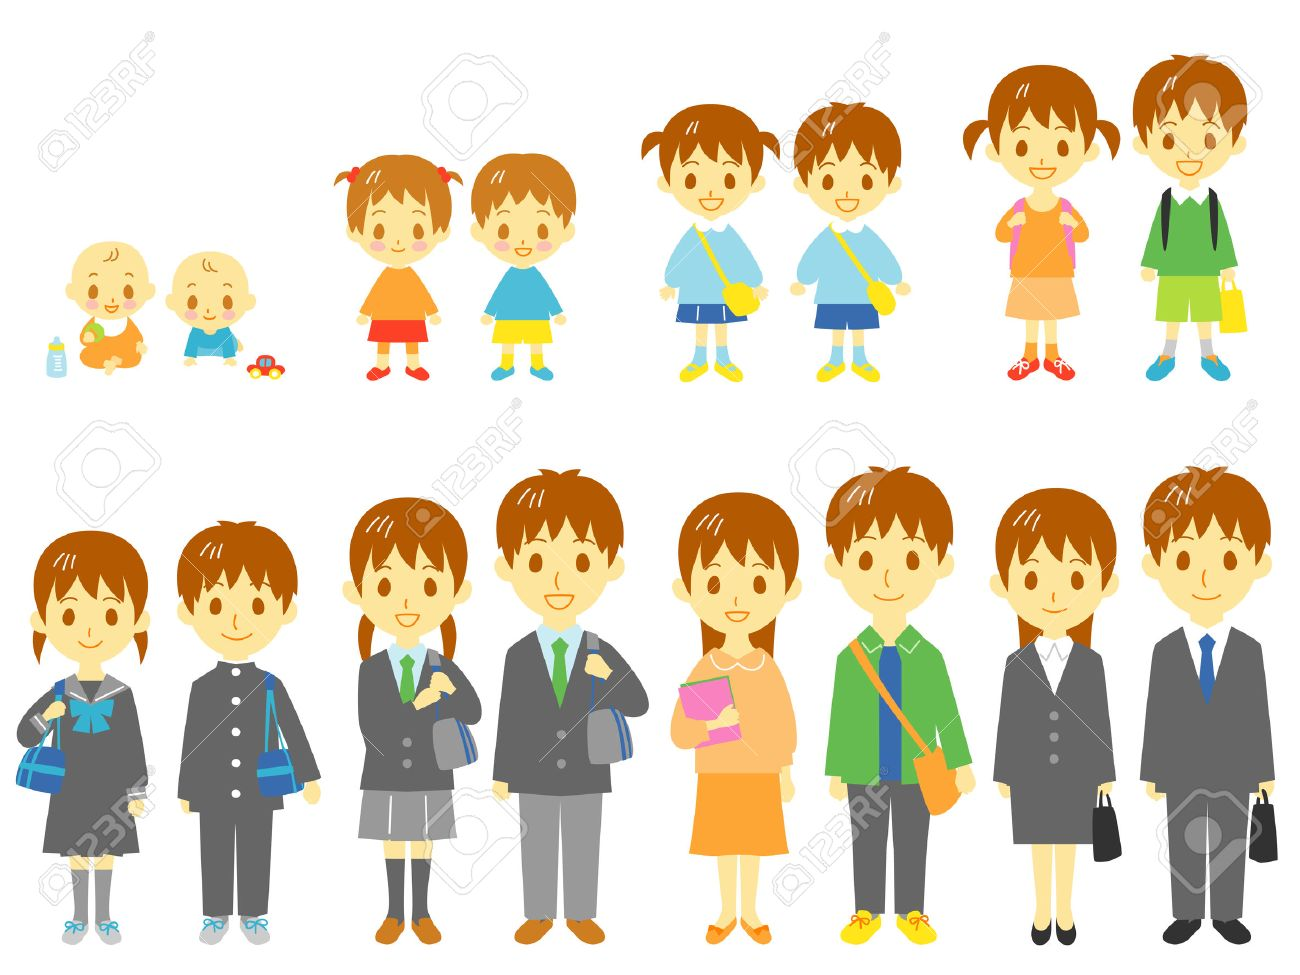 Ngcb clipart website download Infant clipart group baby - 64 transparent clip arts, images ... download